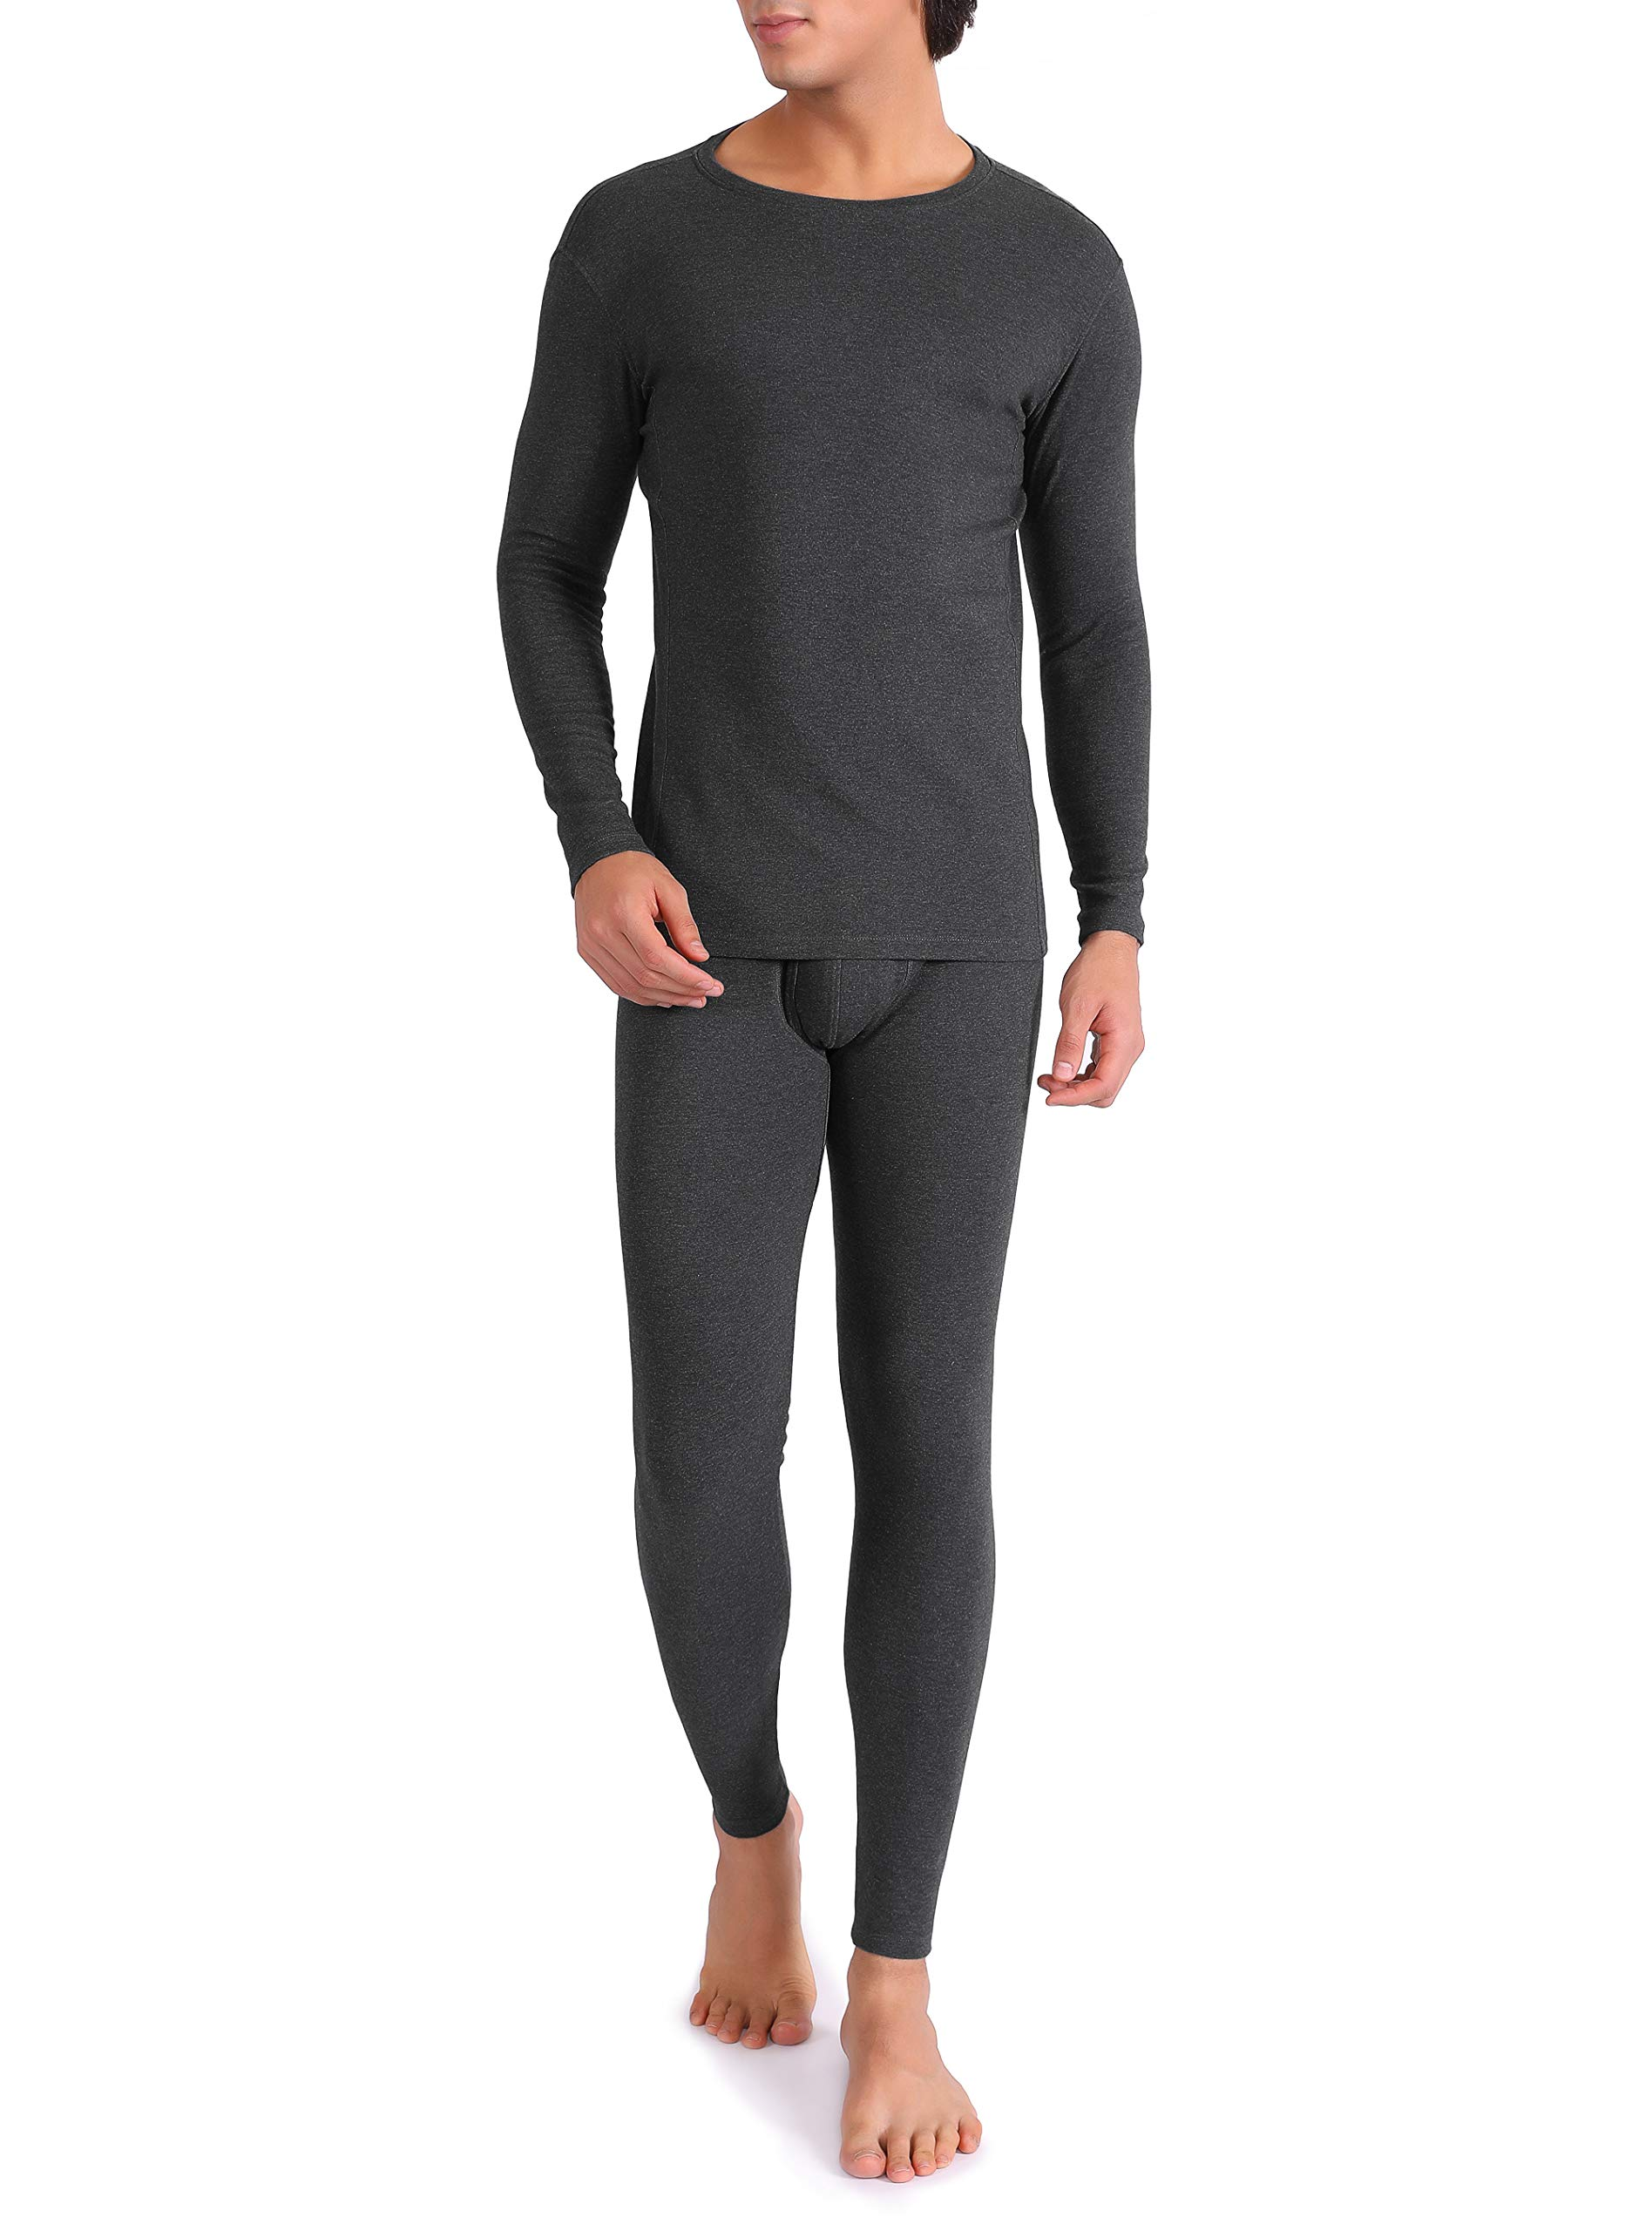 4f4d3bf5b38fe Active Mens Thermal 2 Pc Long John Underwear Set Compression Ultra Soft Fleece  Lined Tops Shirt and Bottom Tights Baselayers